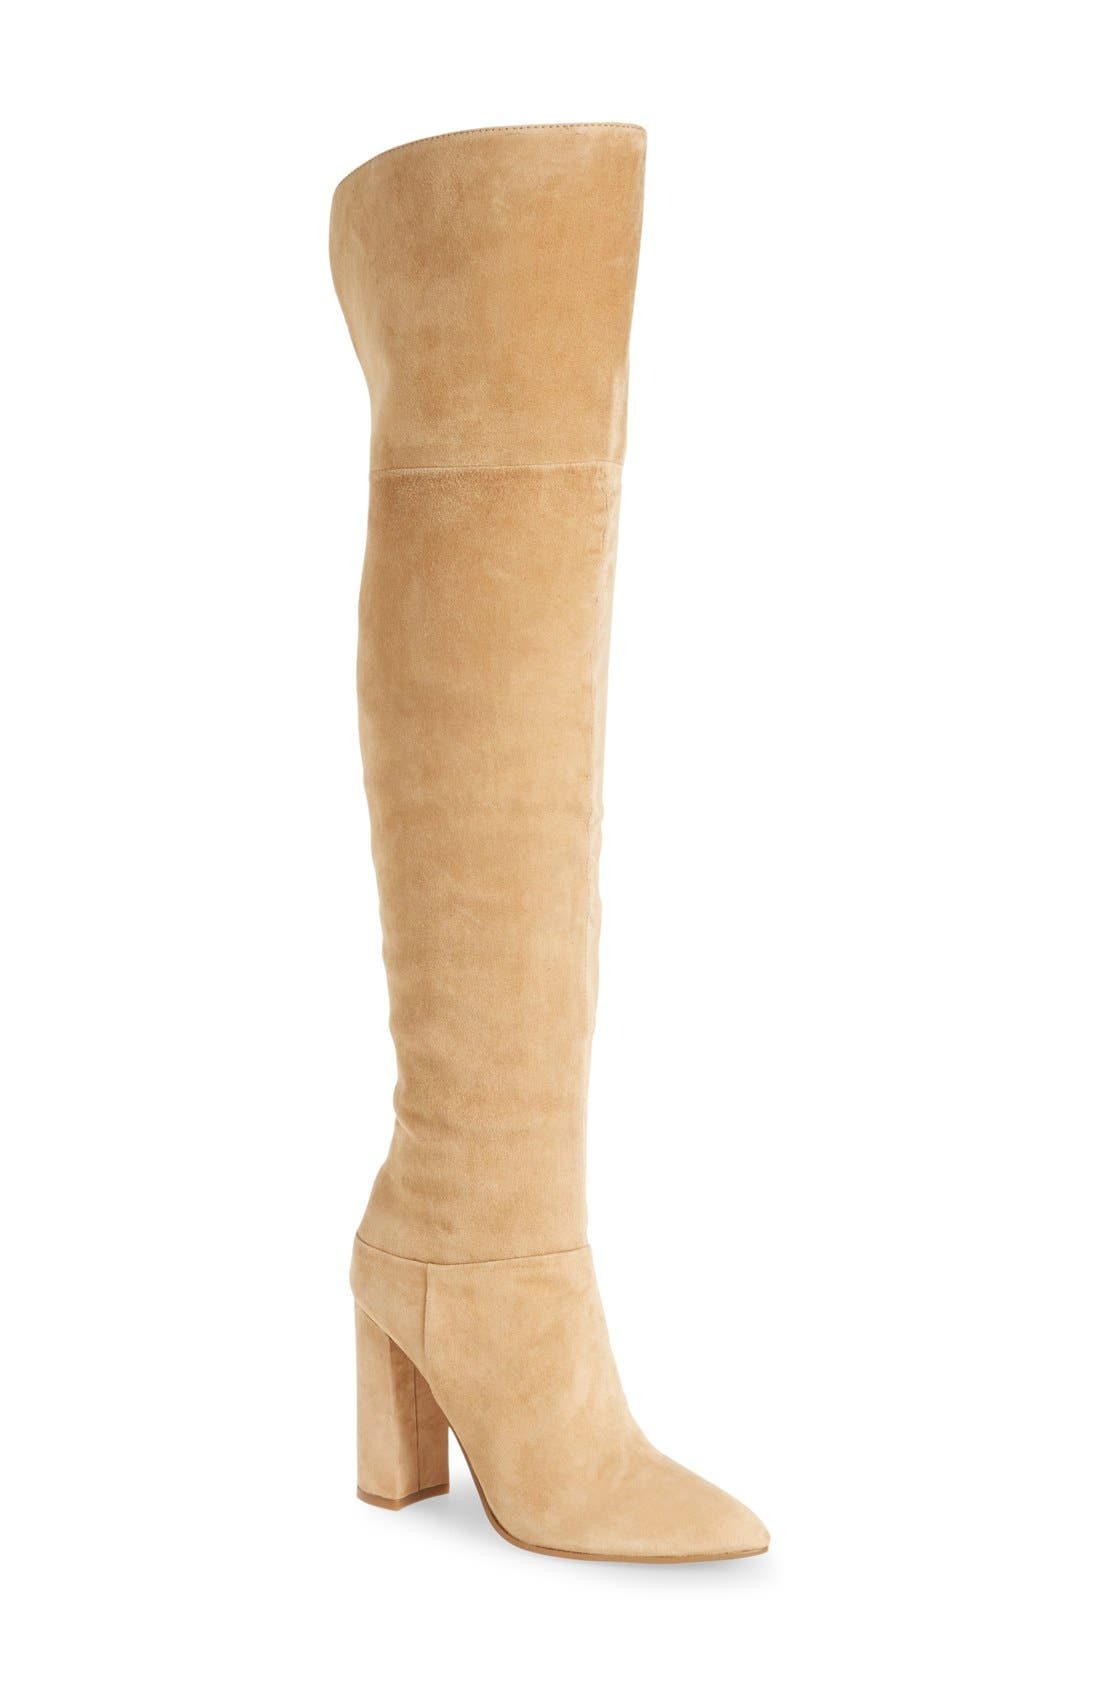 Main Image - Marc Fisher LTD 'Breley' Over the Knee Boot (Women)